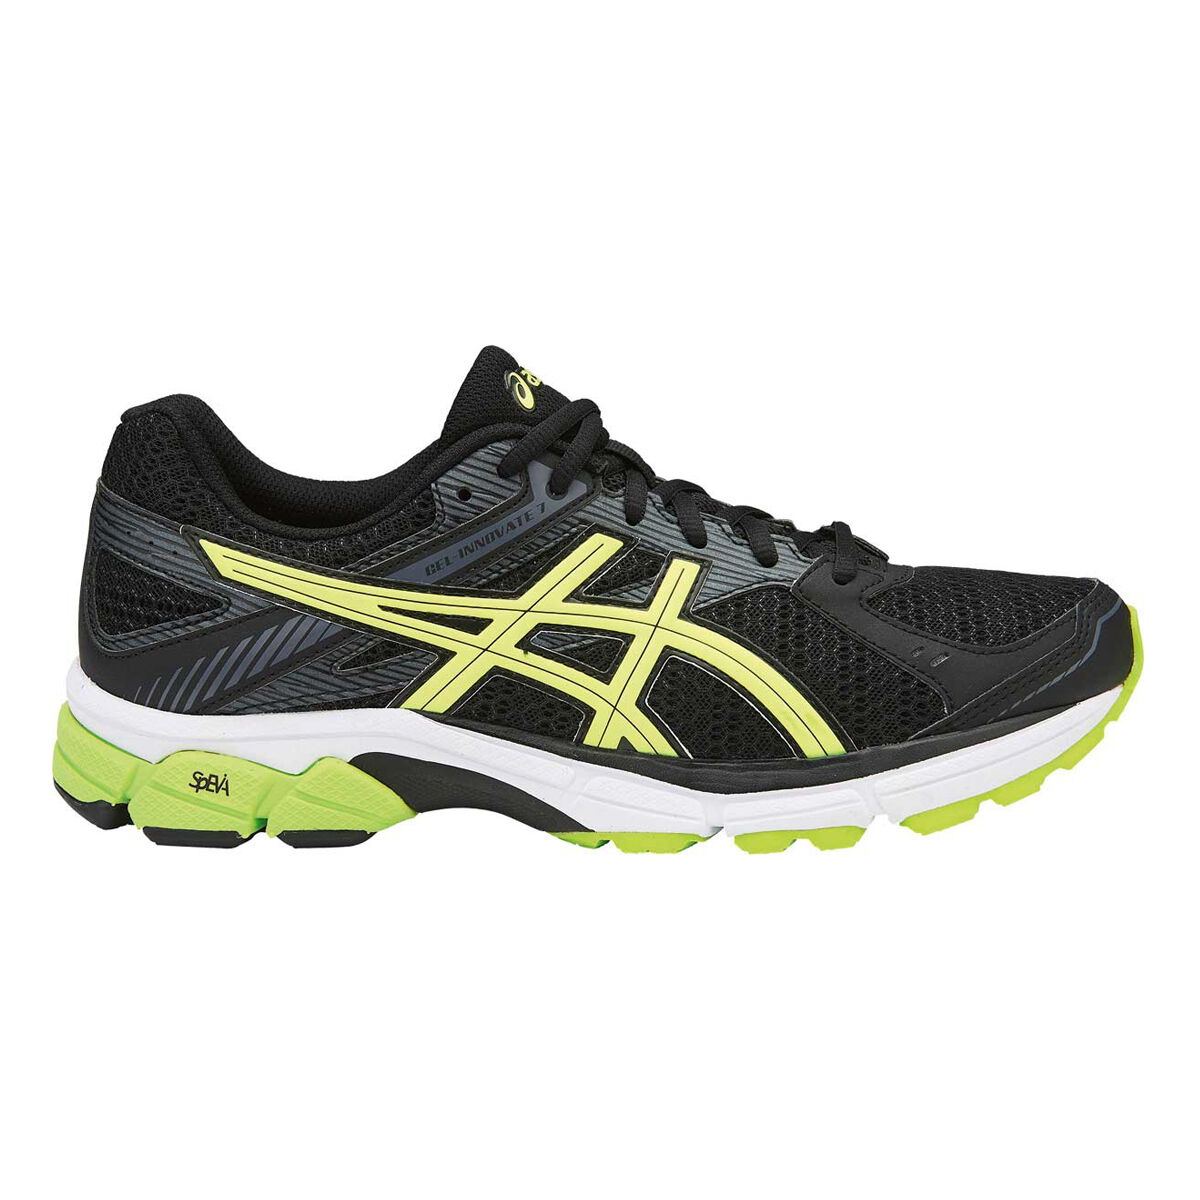 Mens Black Shoes Running Us Gel 7 Rebel Yellow Innovate Asics qwF6Zw